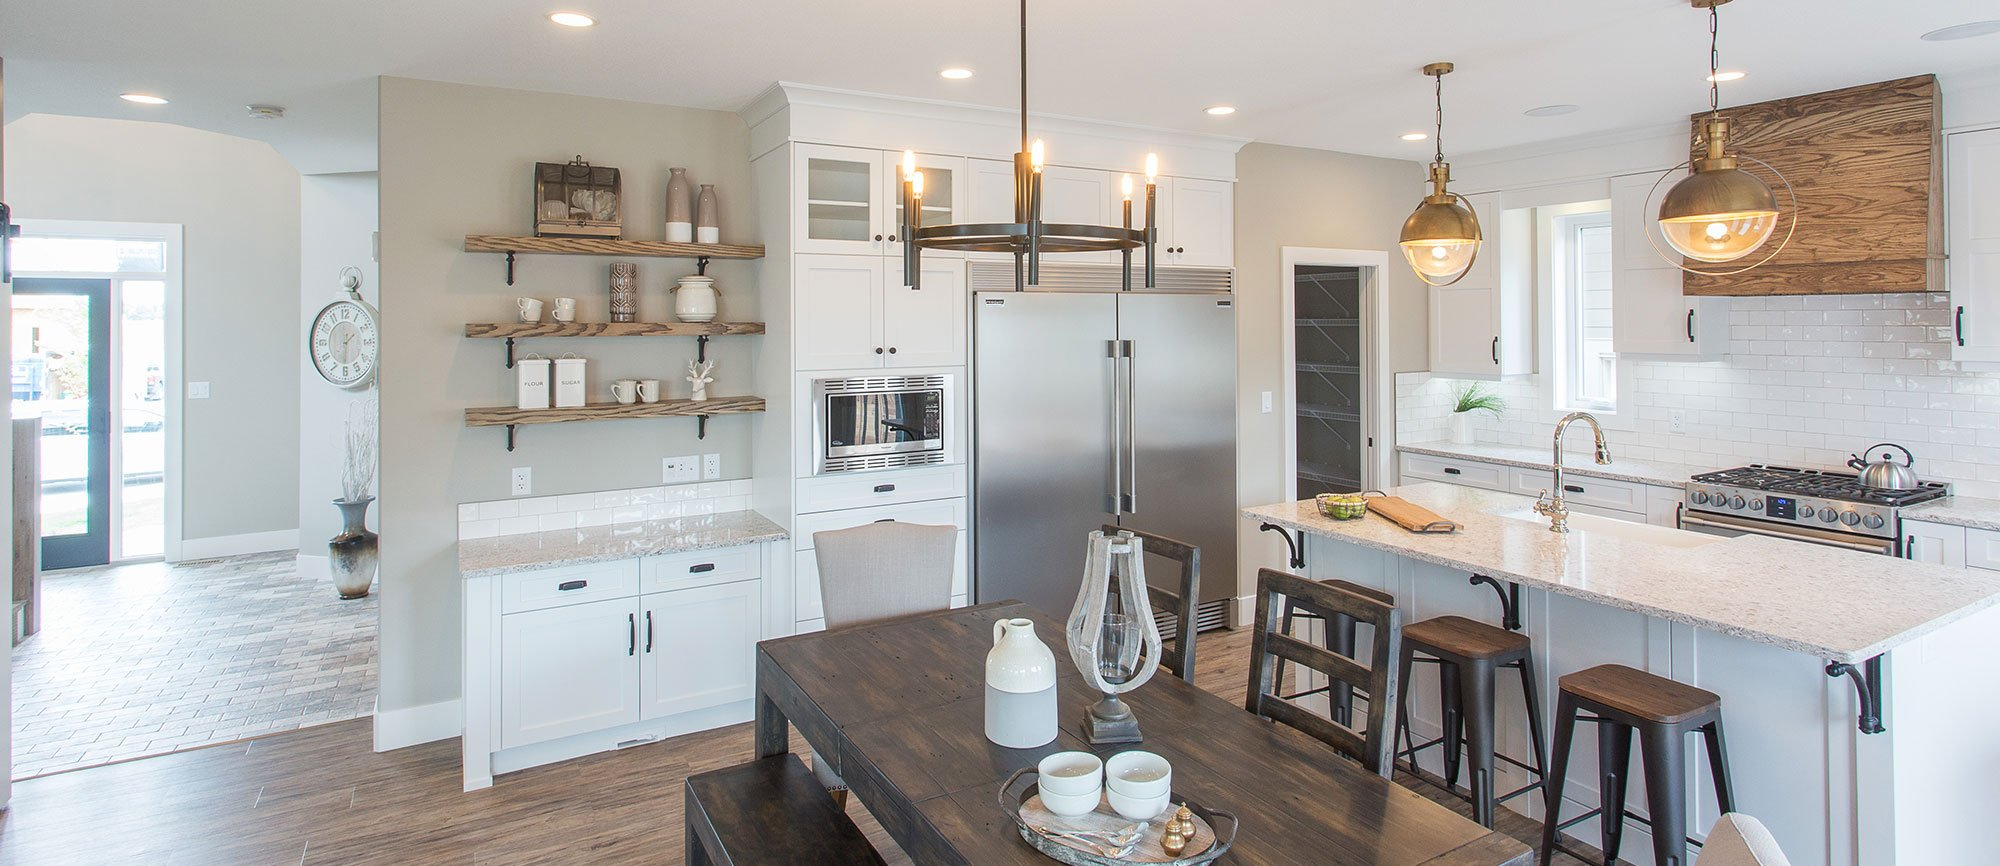 Creating Your Ideal Kitchen